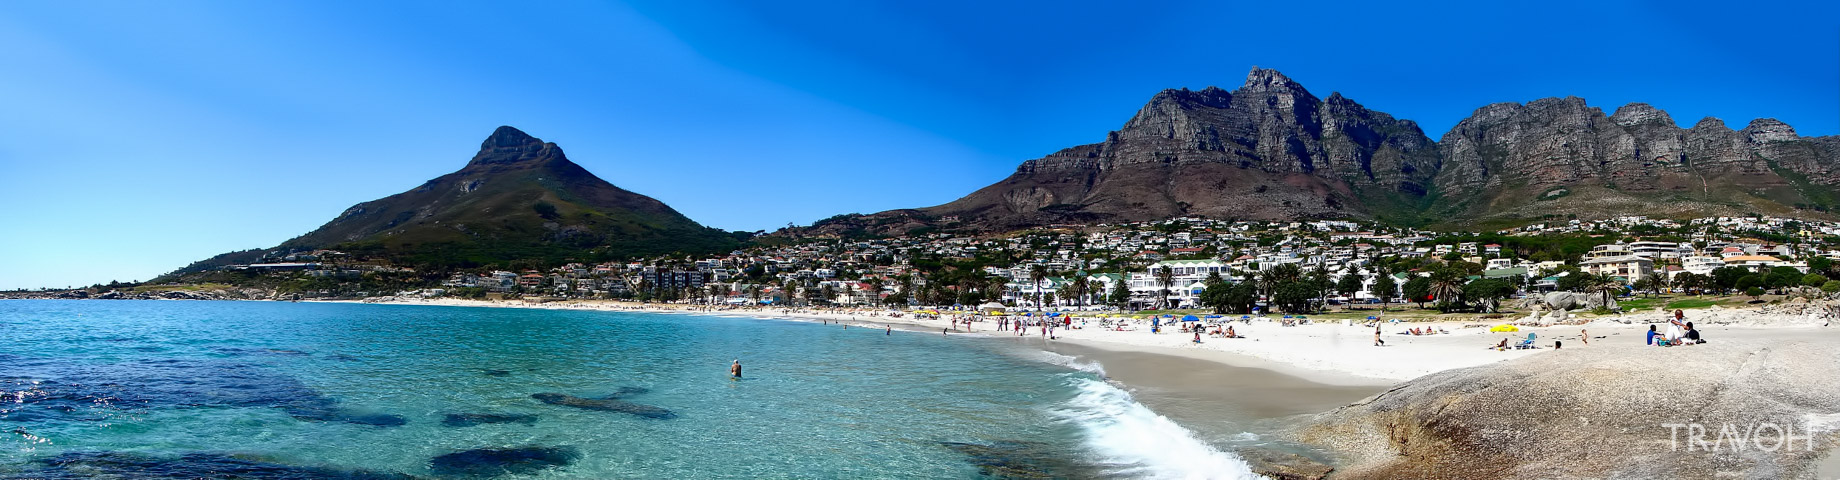 Camps Bay Beach – Exploring 10 of the Top Beaches in Cape Town, South Africa